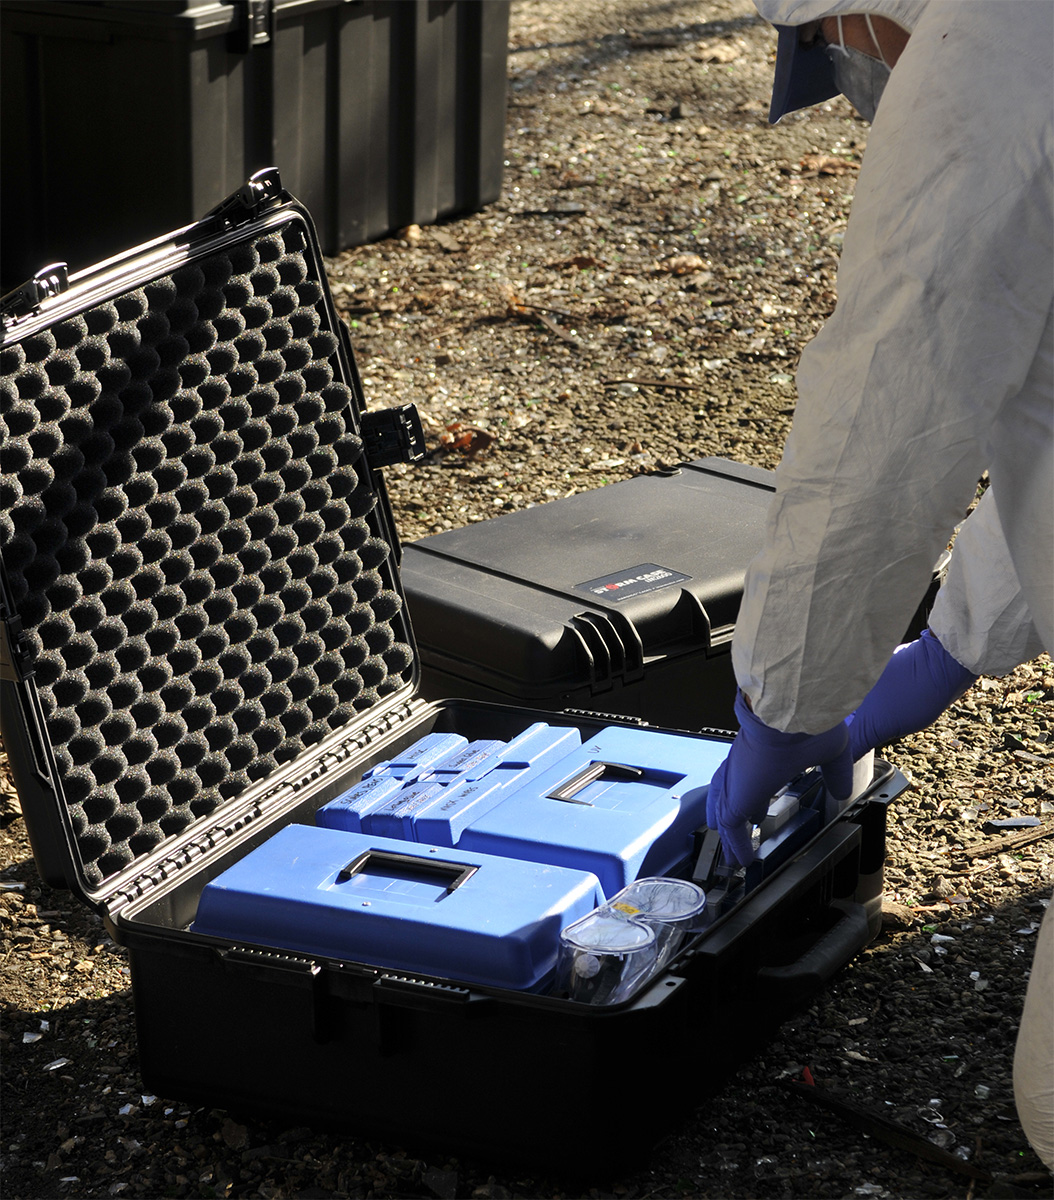 pelican im2600 police tactical forensics gear case